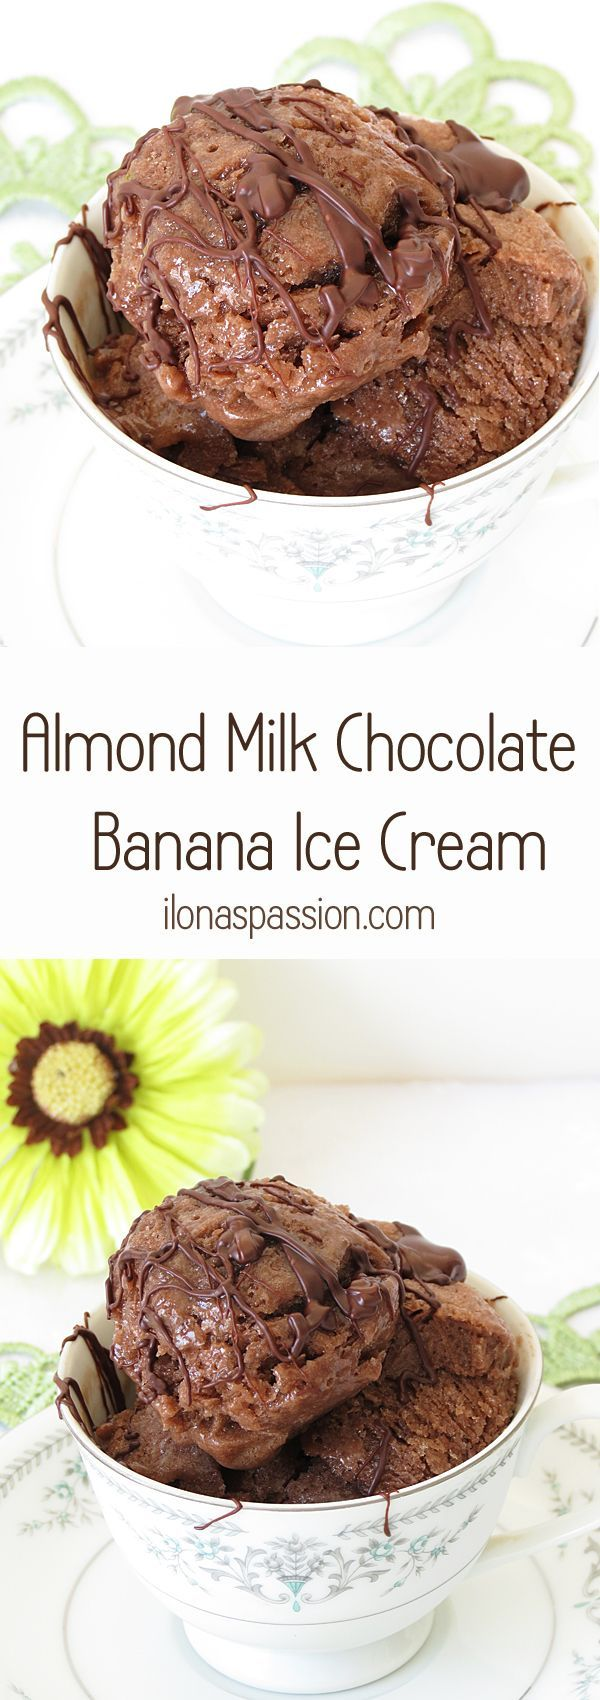 Chocolate Banana Ice Cream made with healthy ingredients like almond milk and maple syrup by http://ilonaspassion.com